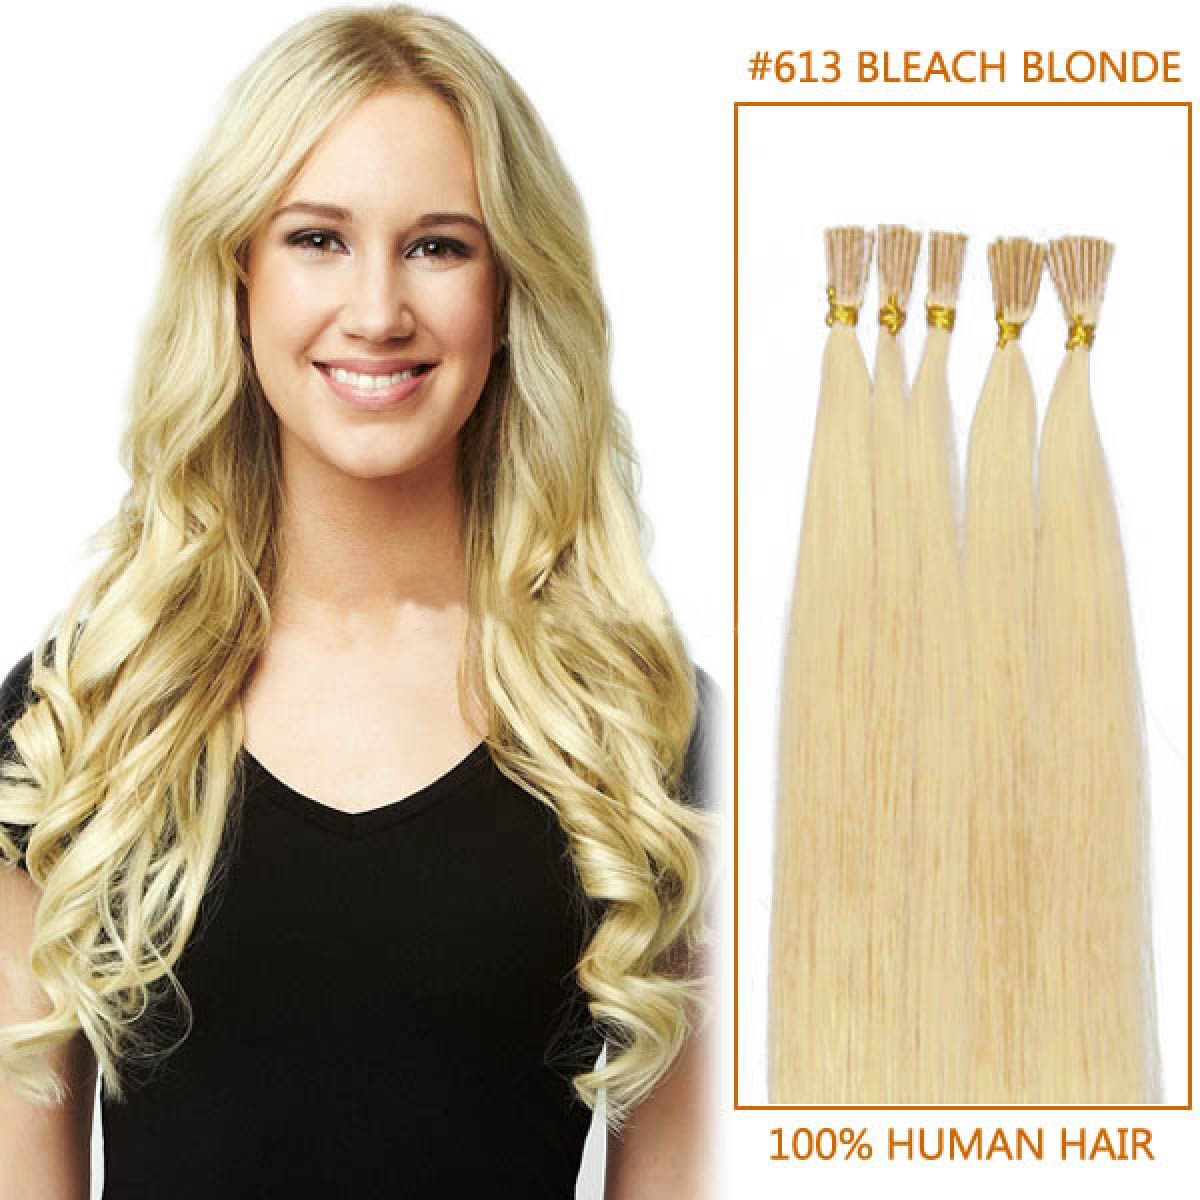 Inch 613 bleach blonde stick tip human hair extensions 100s 18 inch 613 bleach blonde stick tip human hair extensions 100s pmusecretfo Gallery